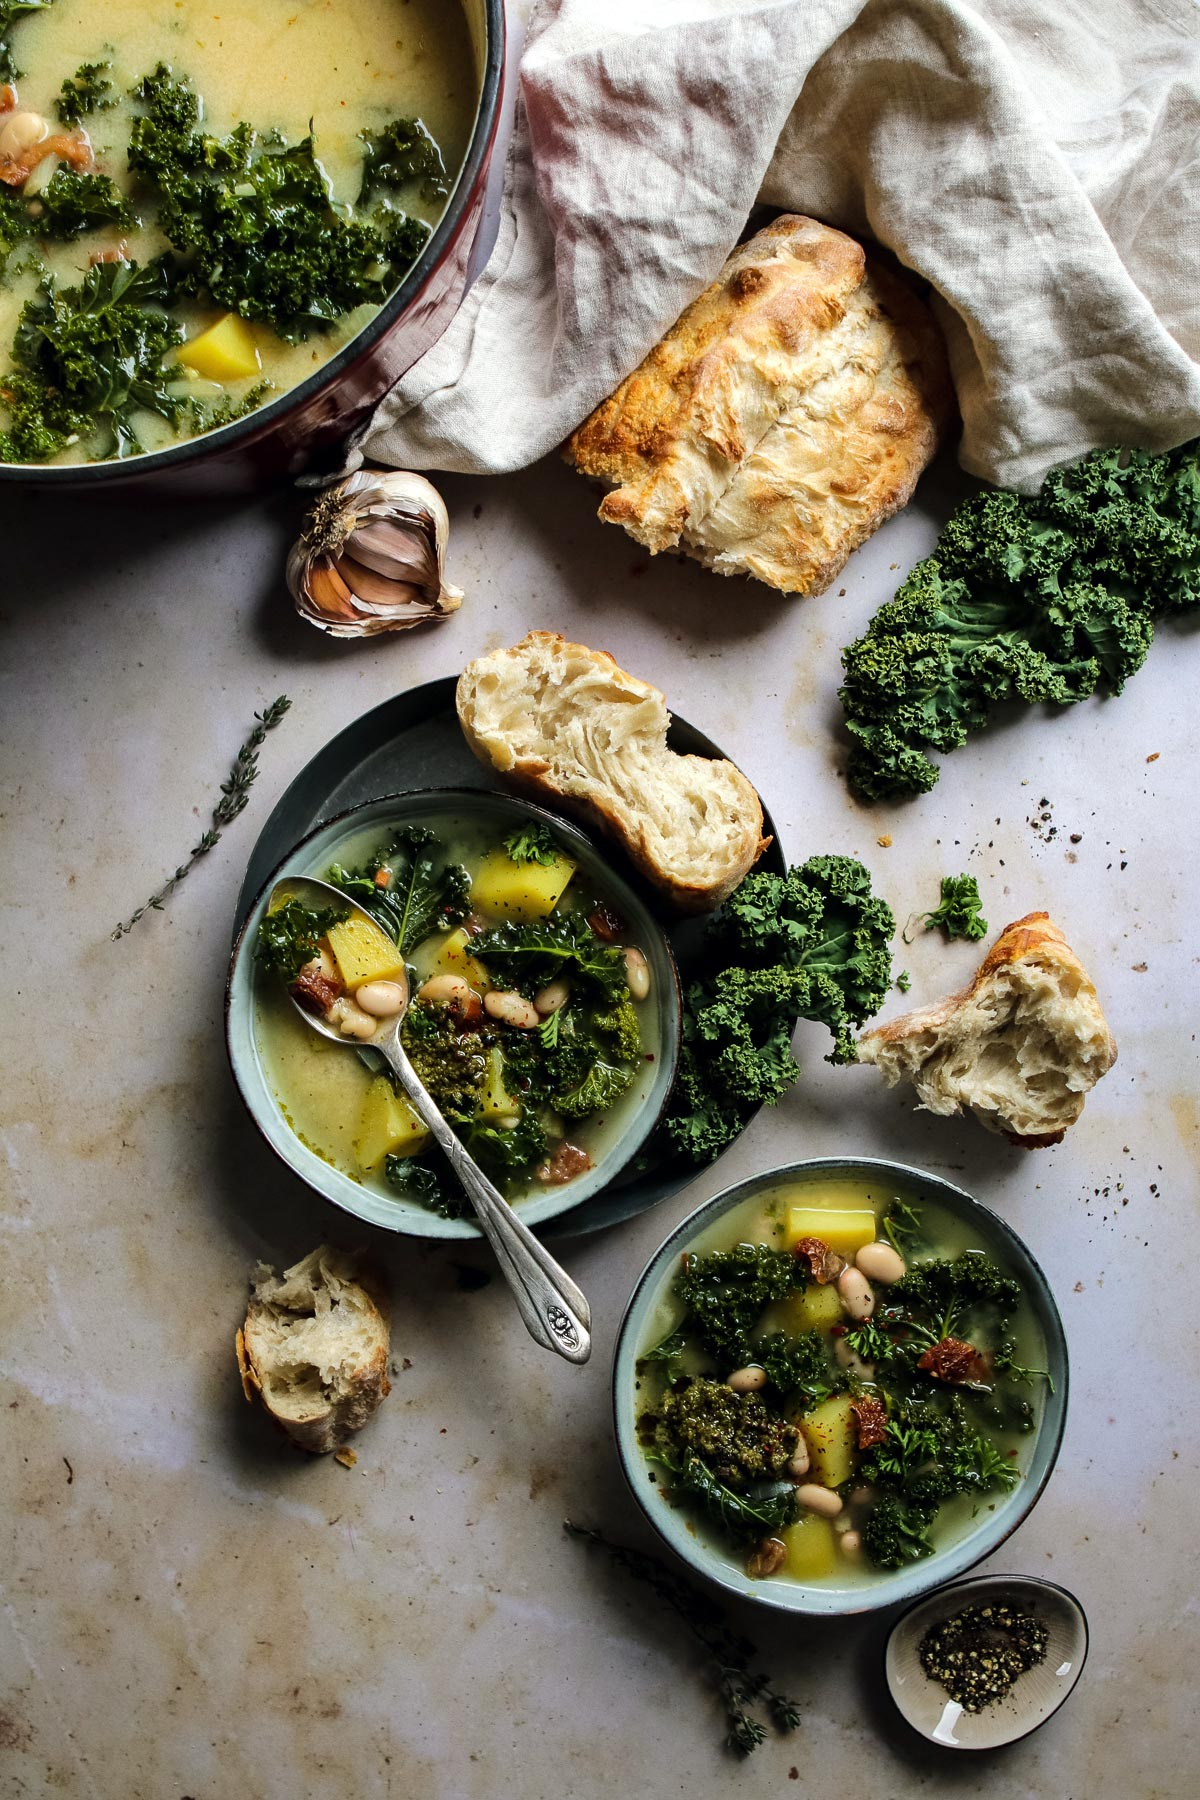 Vegan Zuppa Toscana in bowls with bread.